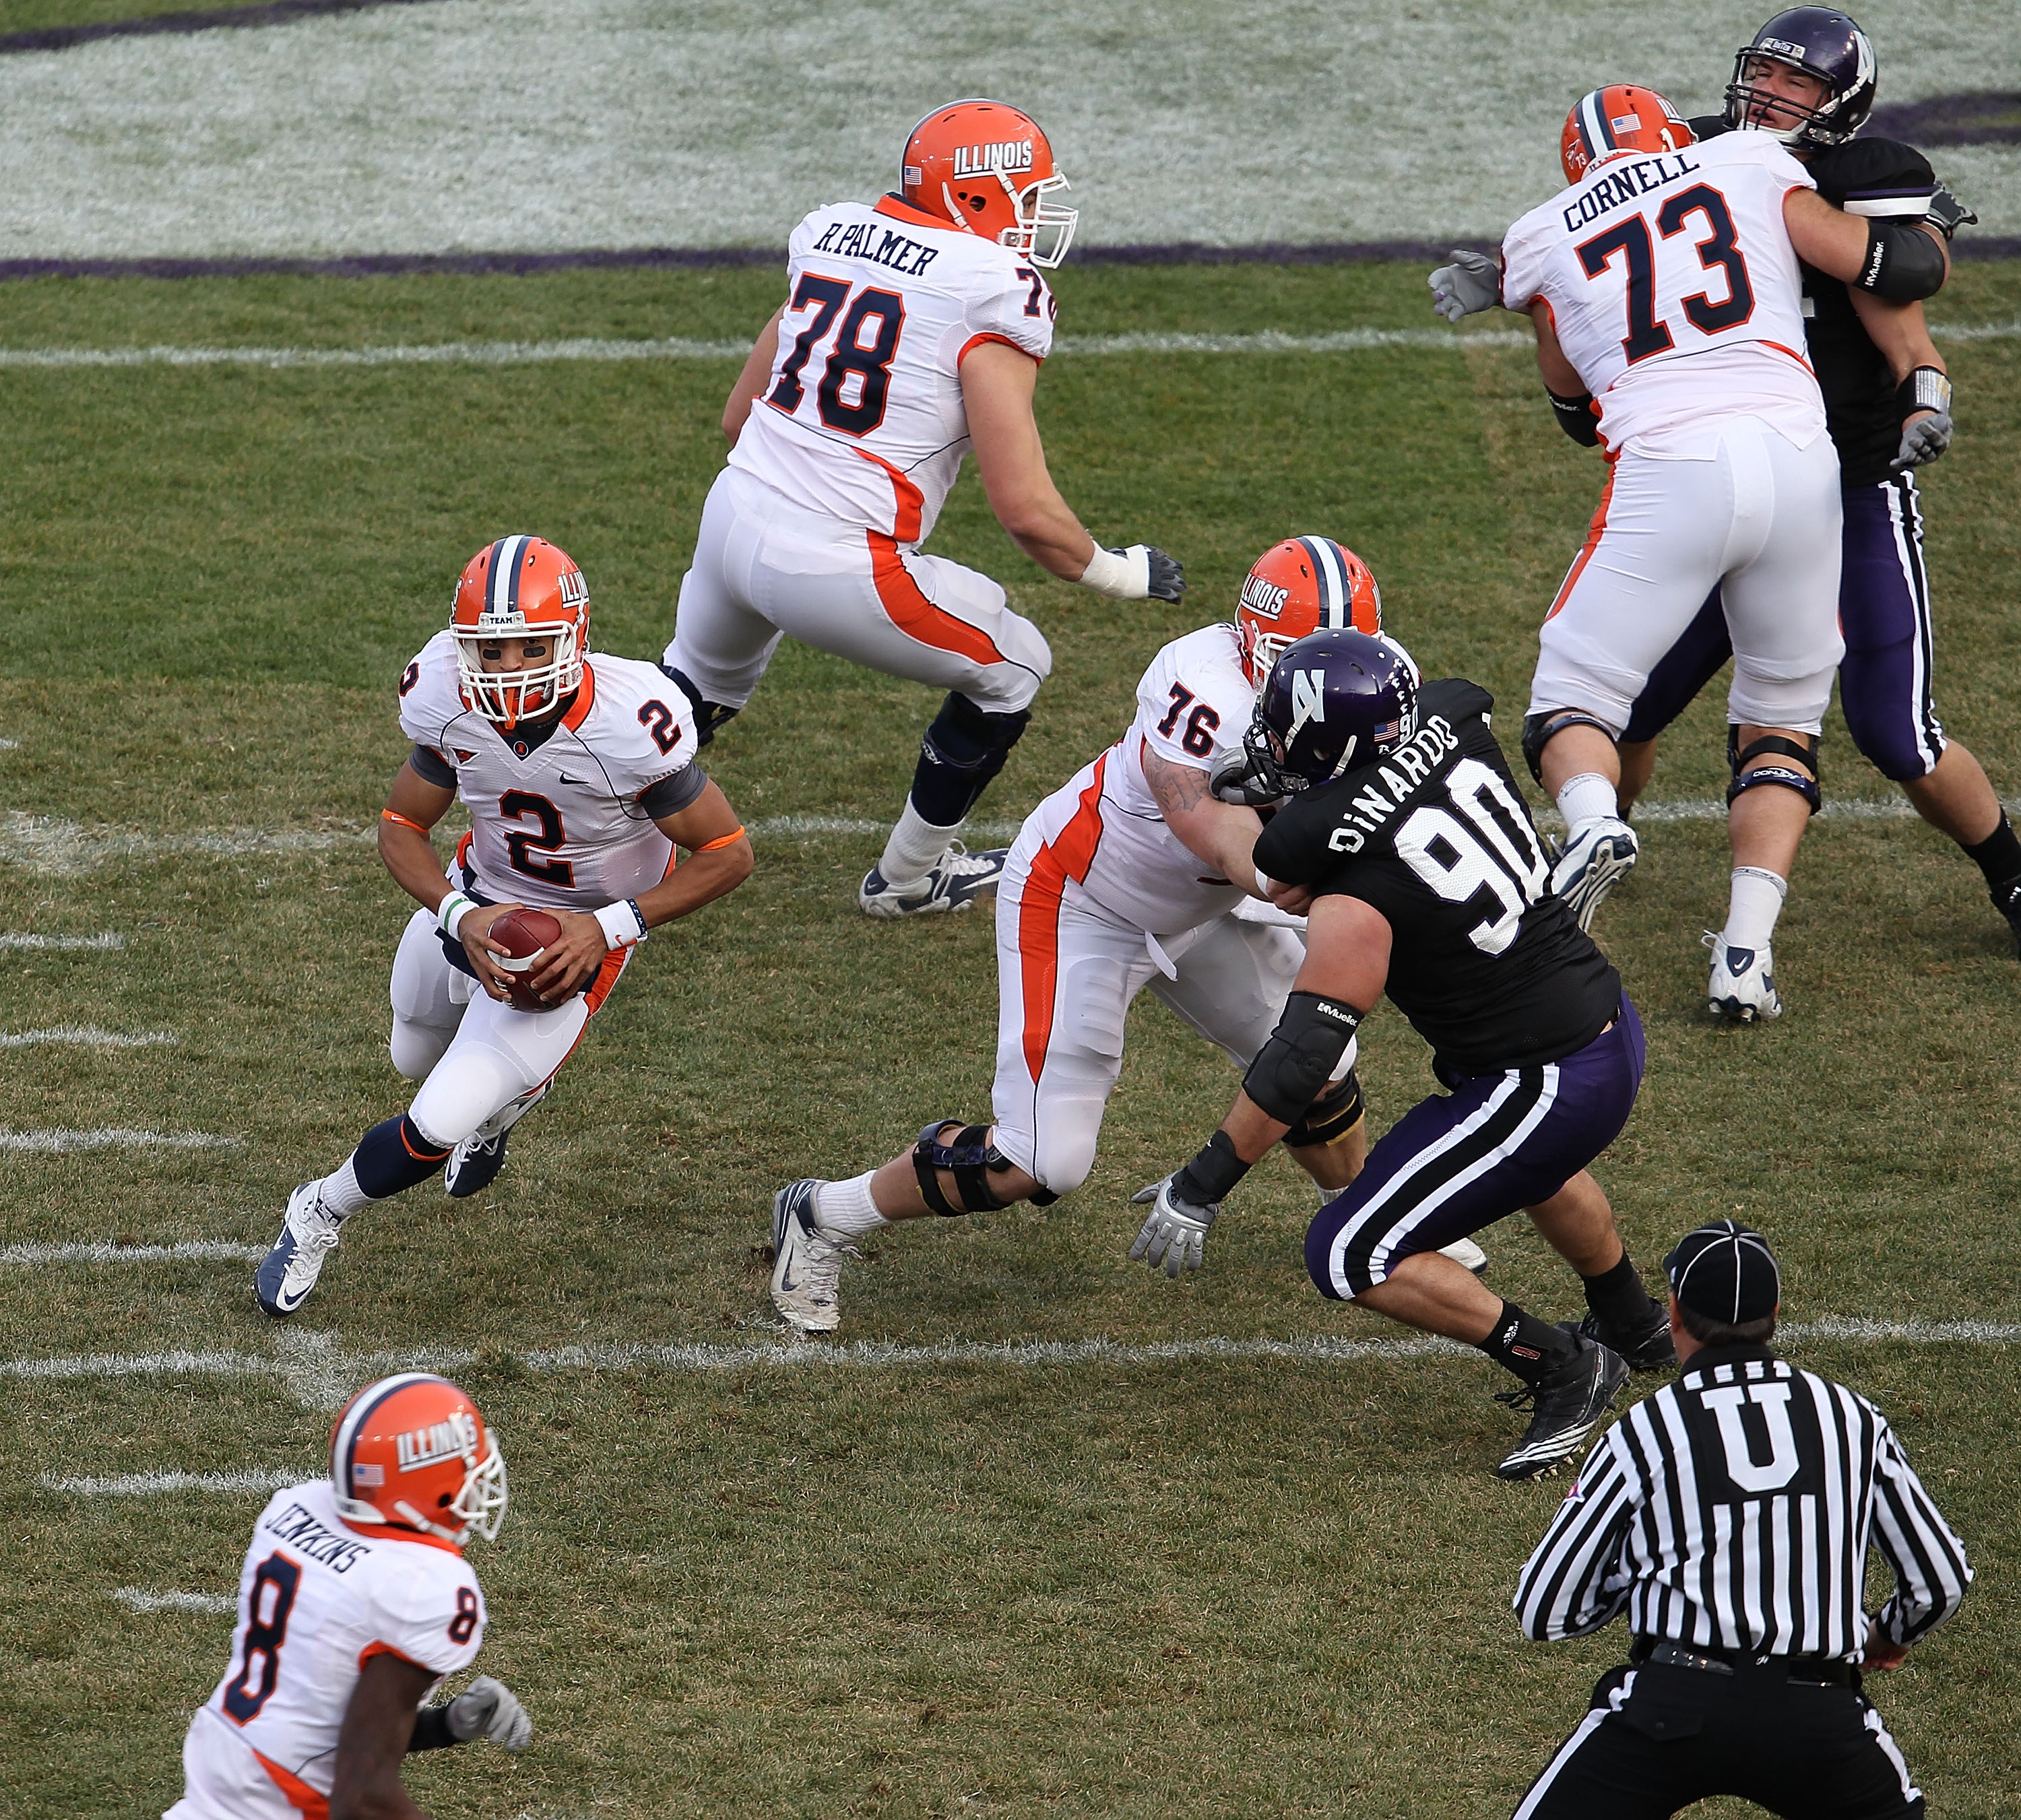 CHICAGO, IL - NOVEMBER 20:  Nathan Scheelhasse #2 of the Illinois Fighting Illini runs as Jack DiNardo #90 of the Northwestern Wildcats rushes during a game played at Wrigley Field on November 20, 2010 in Chicago, Illinois. Illinois defeated Northwestern